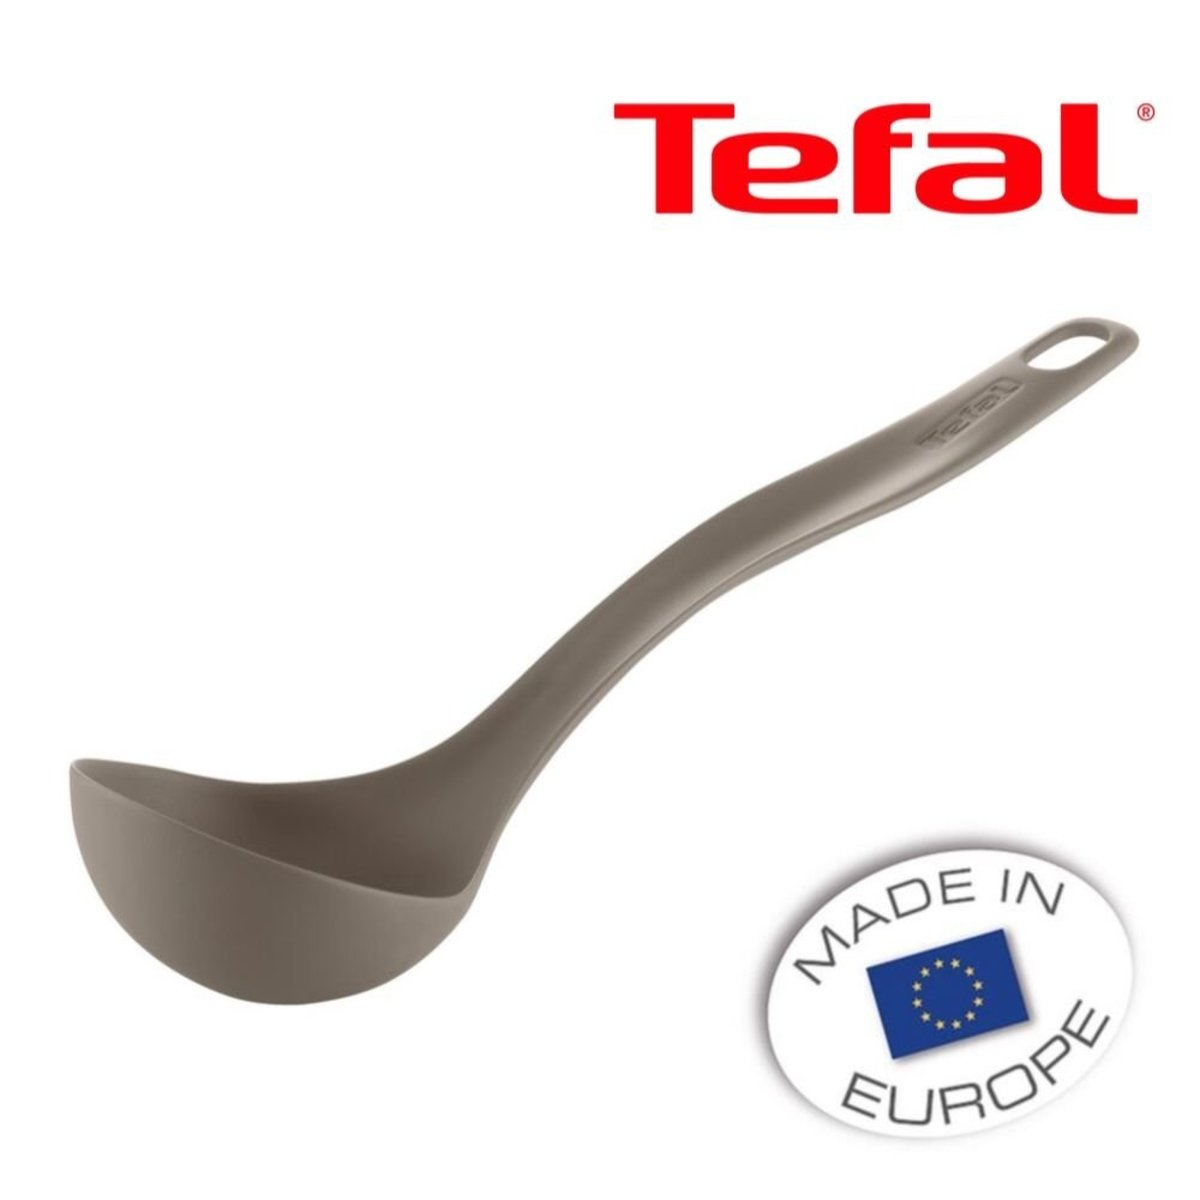 [HKTV exclusive] Made-in-Europe Non-stick Ladle K00602